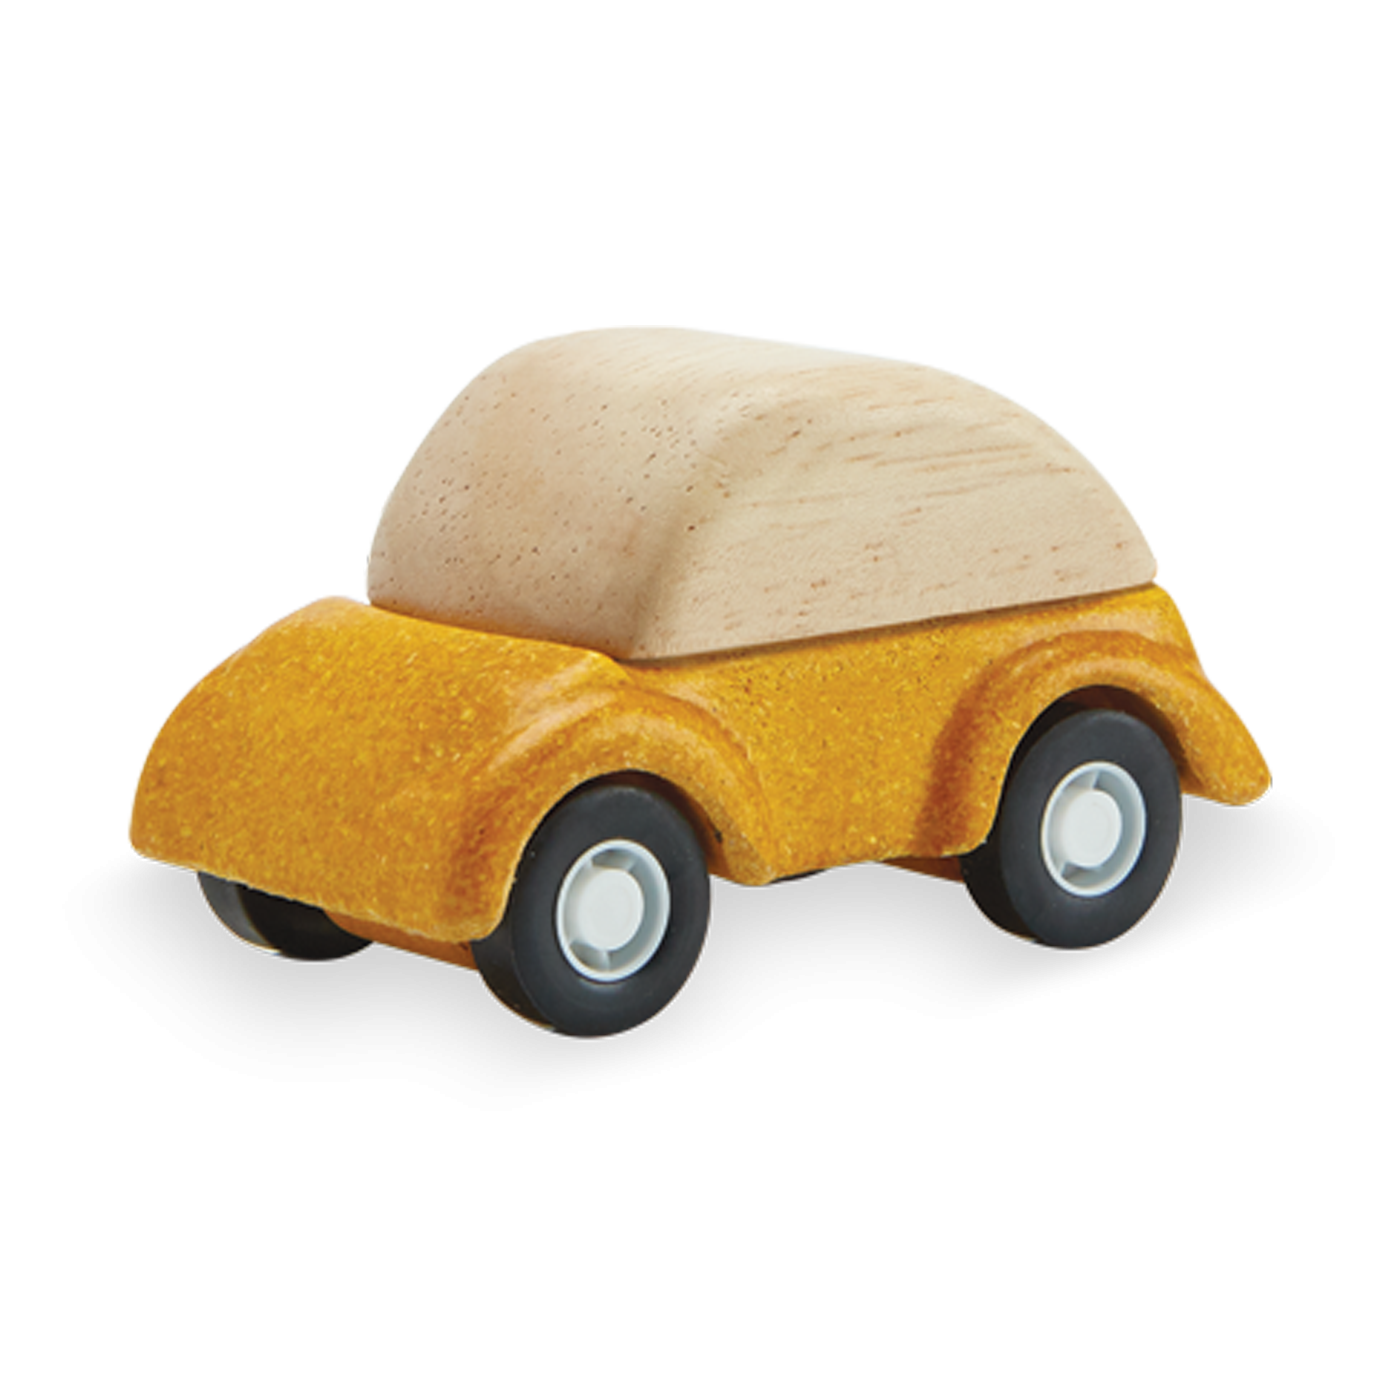 6282_PlanToys_Yellow_Car_Pretend_Play_3yrs_Wooden_toys_Education_toys_Safety_Toys_Non-toxic_0.png